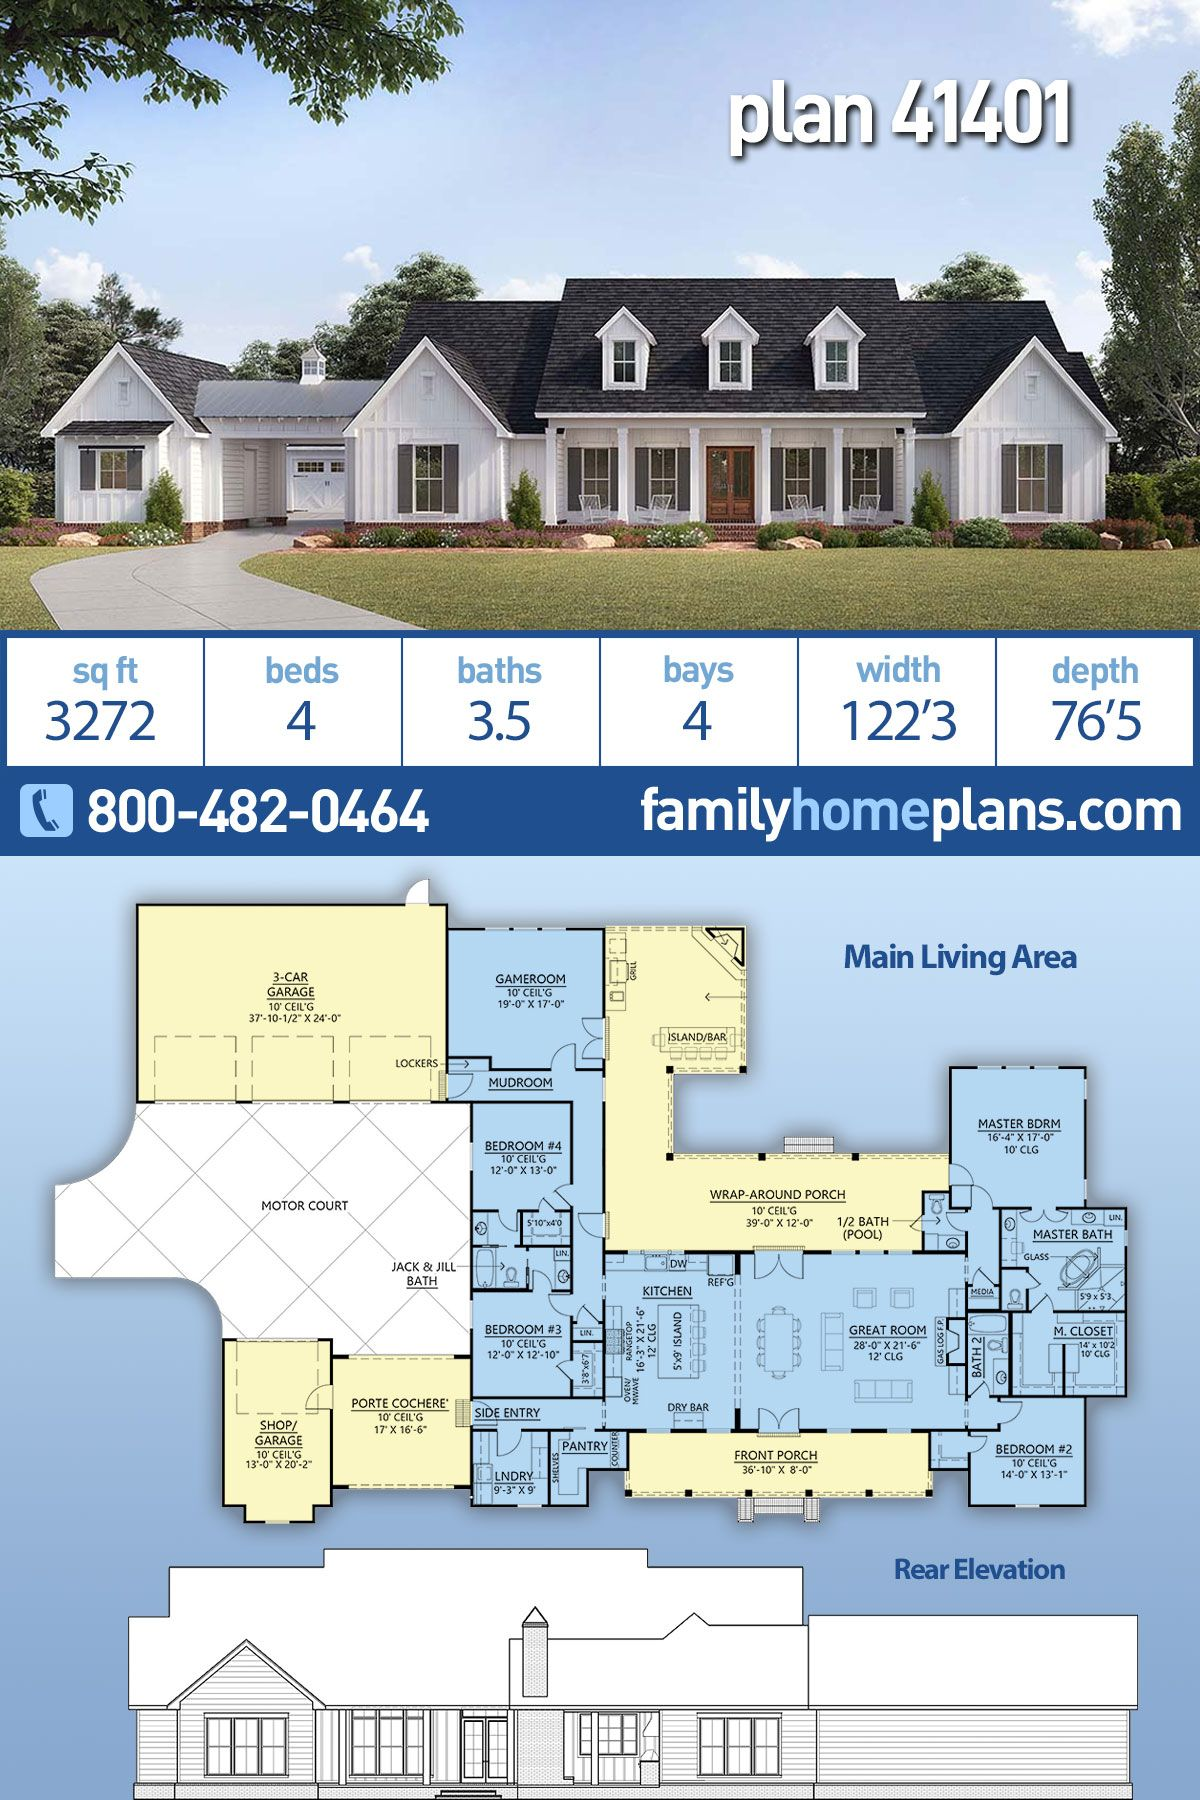 Traditional Style House Plan 41401 With 4 Bed 4 Bath 4 Car Garage Family House Plans House Plans Farmhouse Dream House Plans